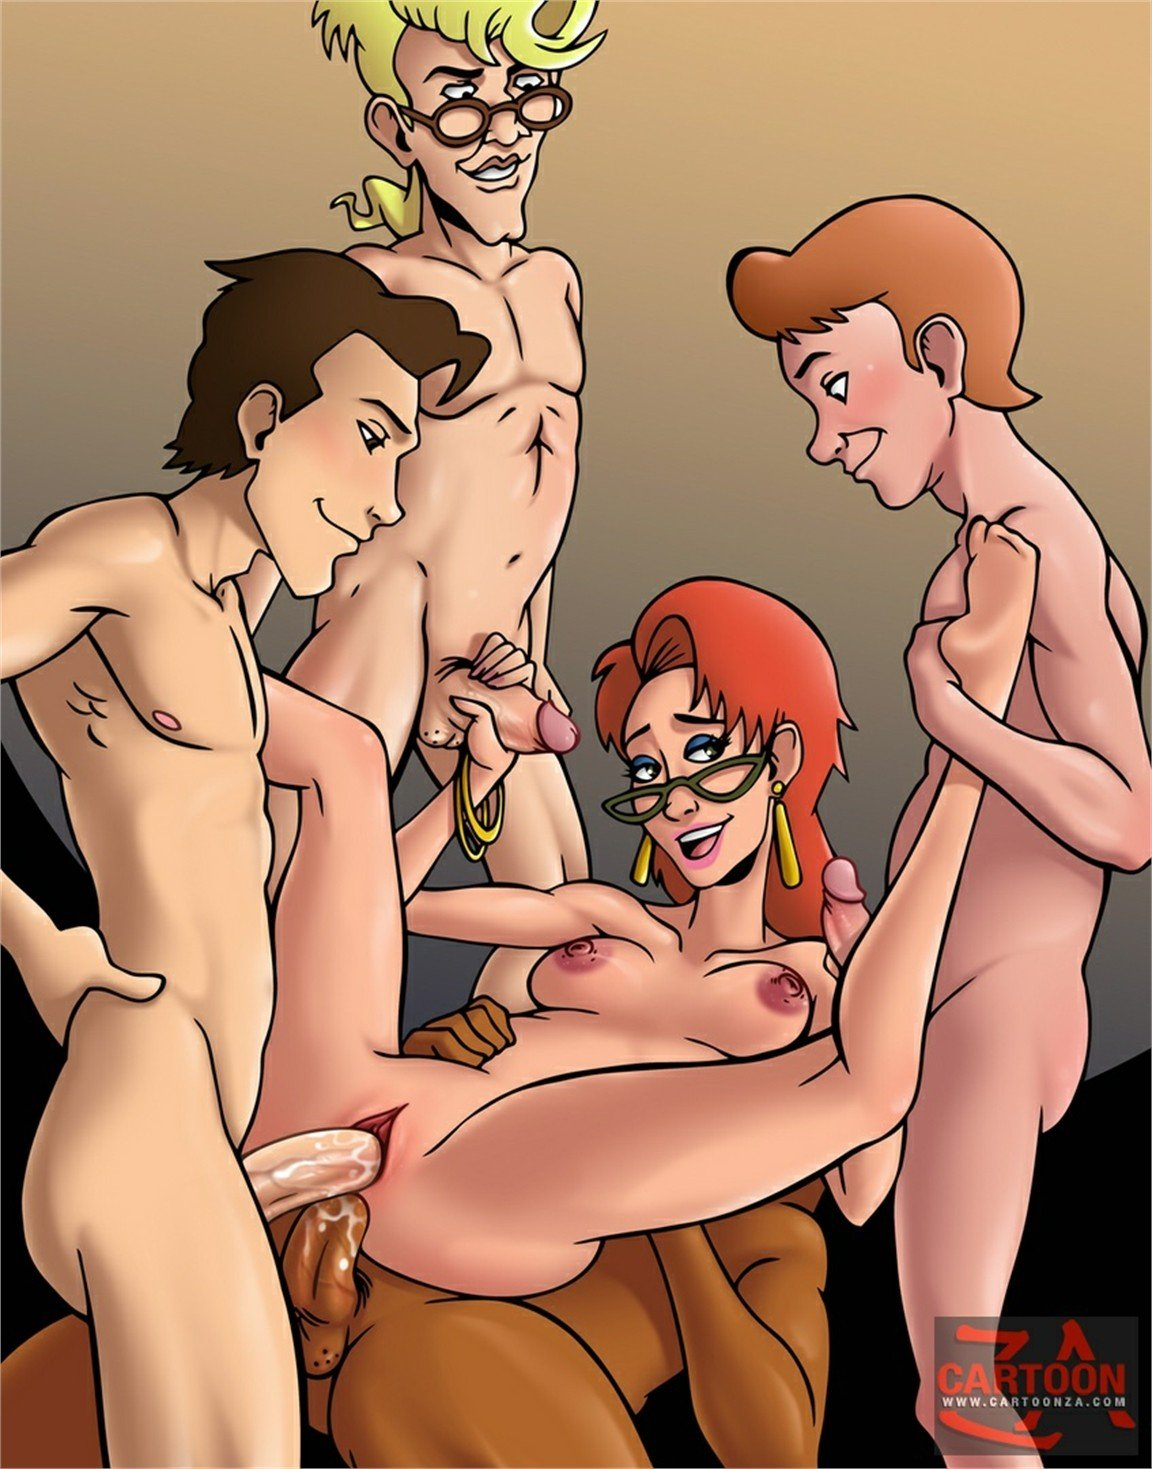 Free Cartoon Sex Photo Showing Porn